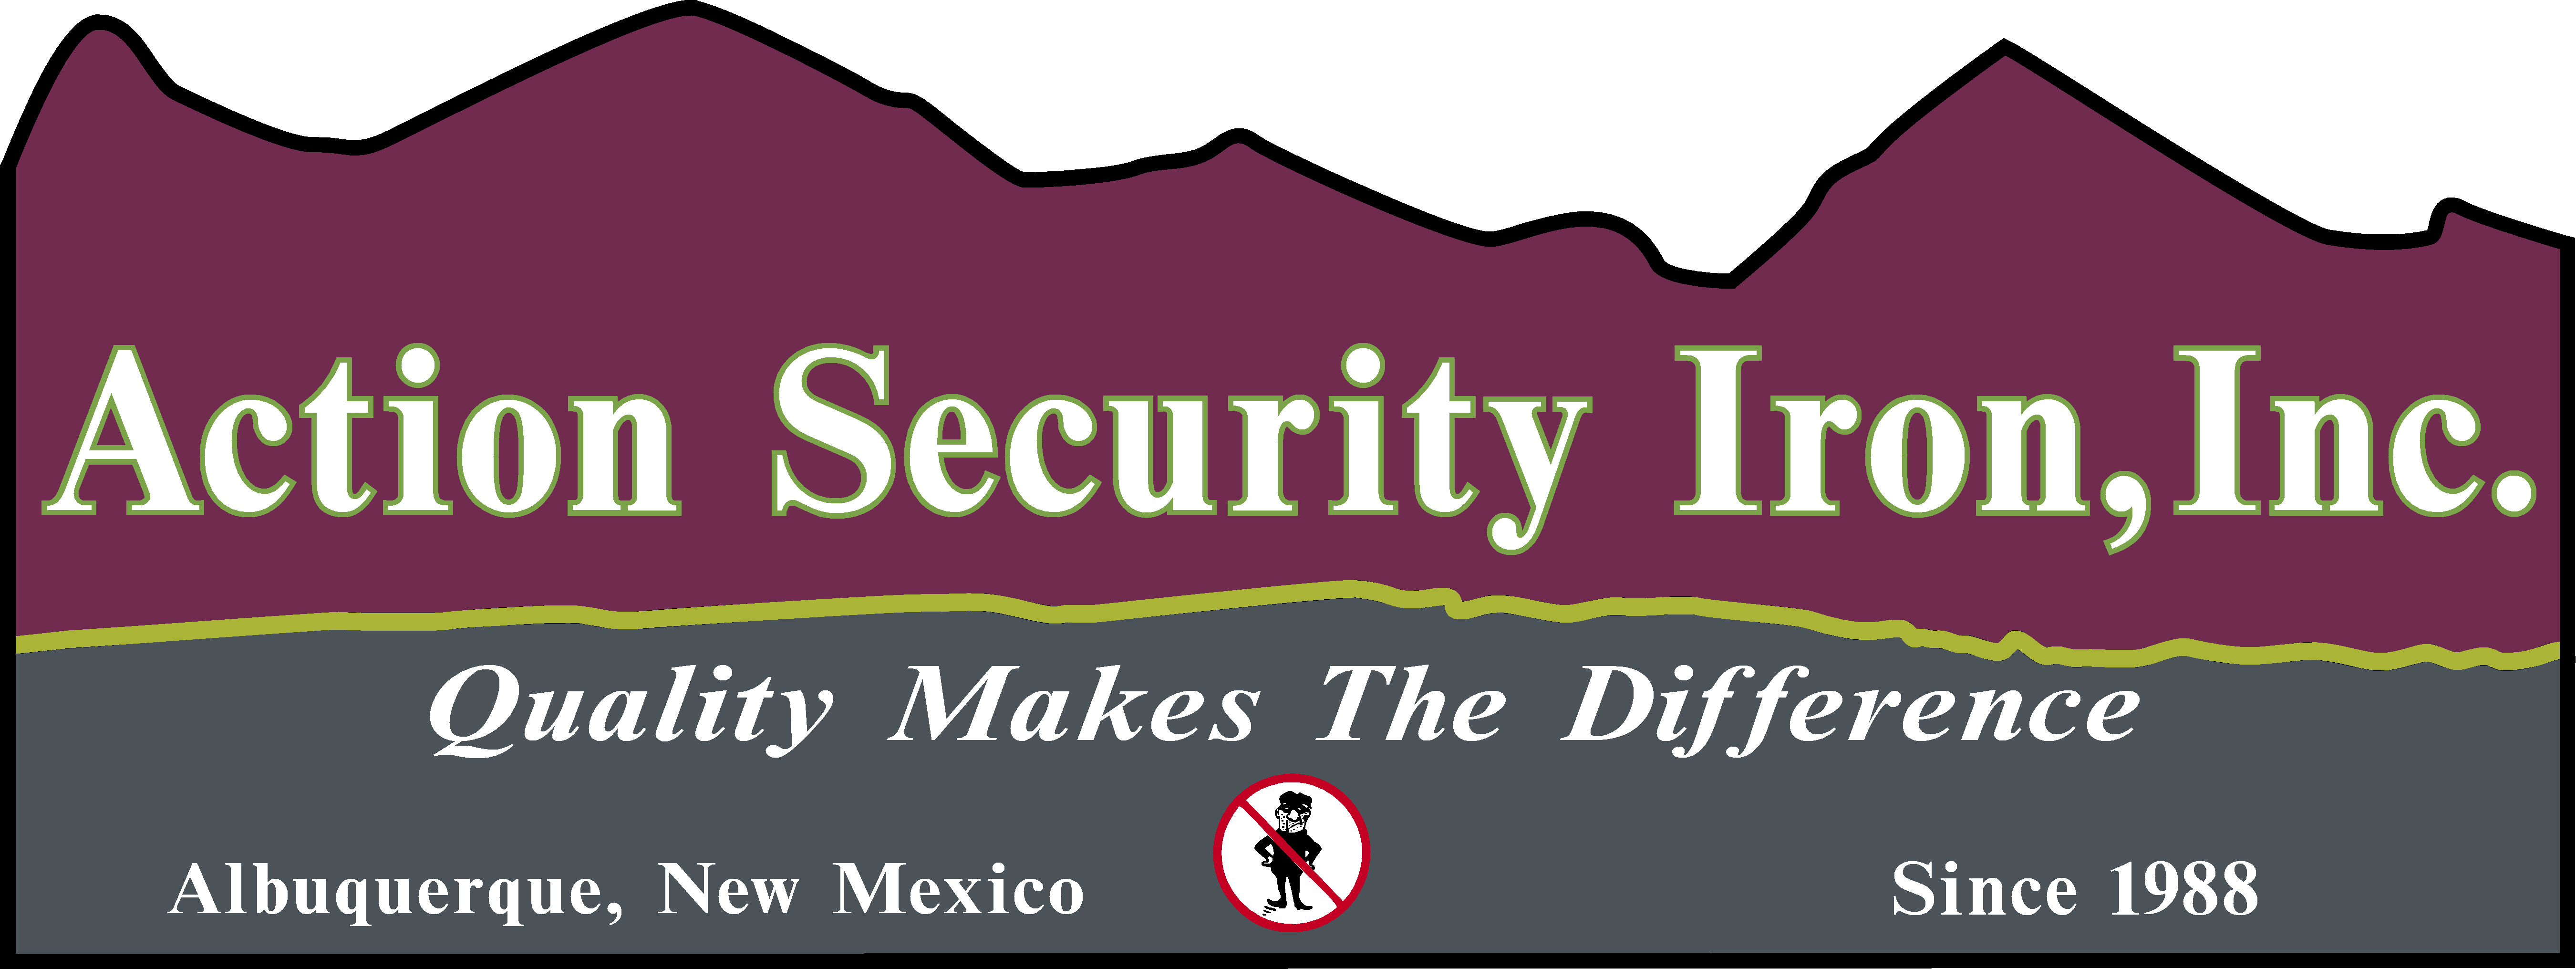 ACTION SECURITY IRON INC logo